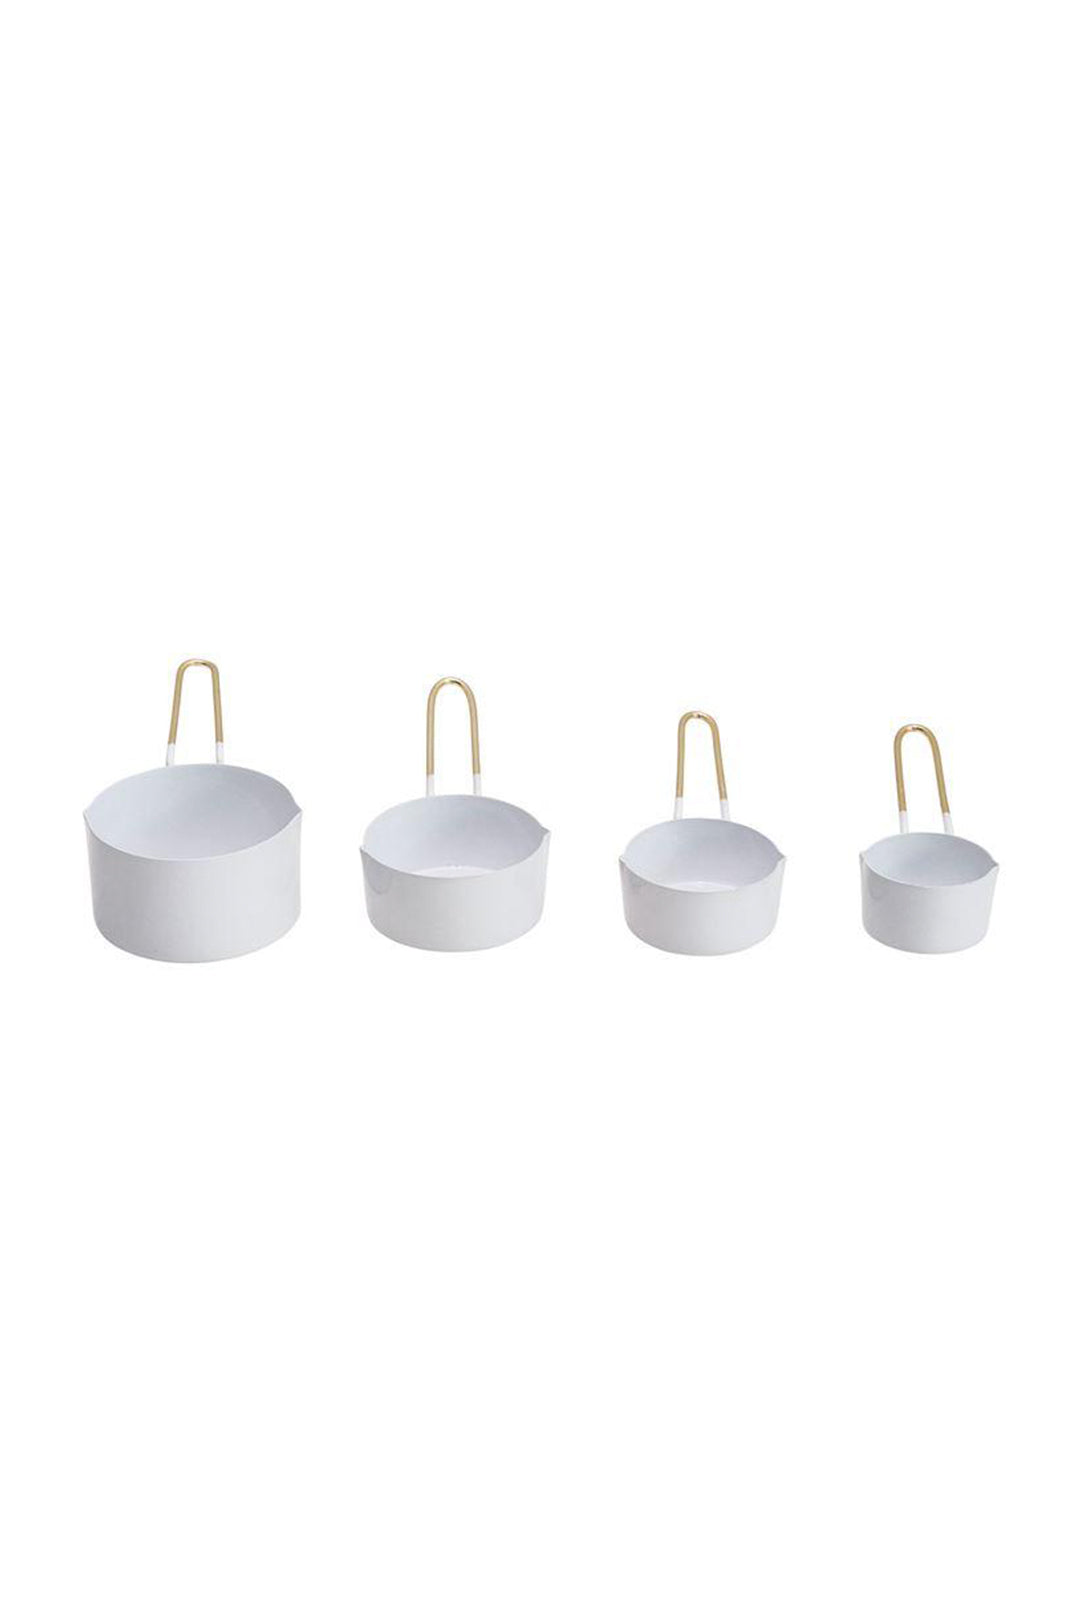 Enameled Measuring Cups w/Gold Finish Handles, Set of 4